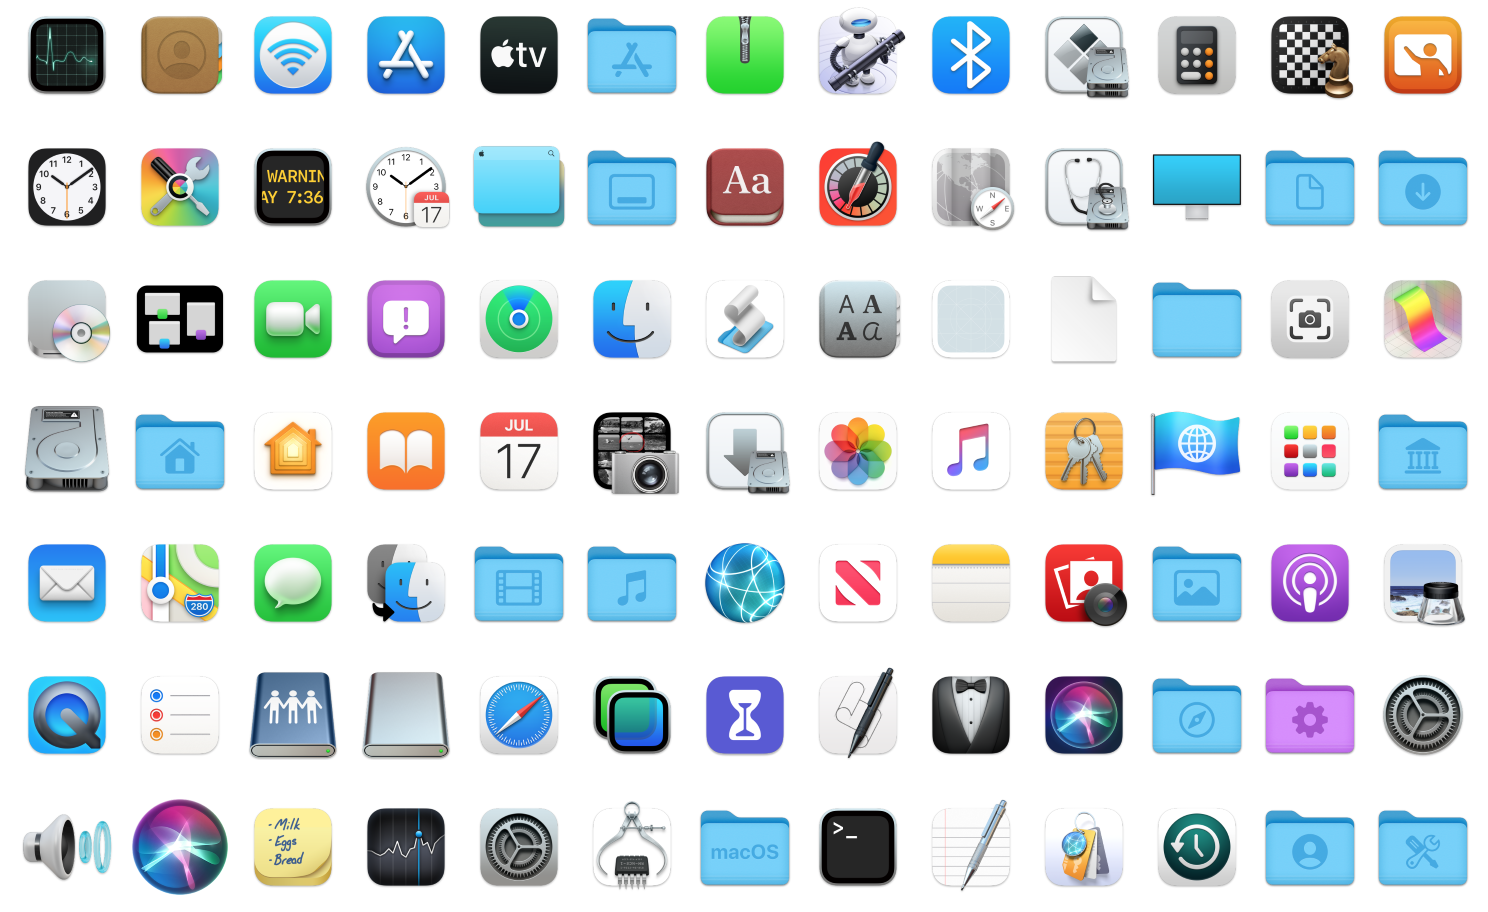 Macos Big Sur Icons Final By Protheme On Deviantart